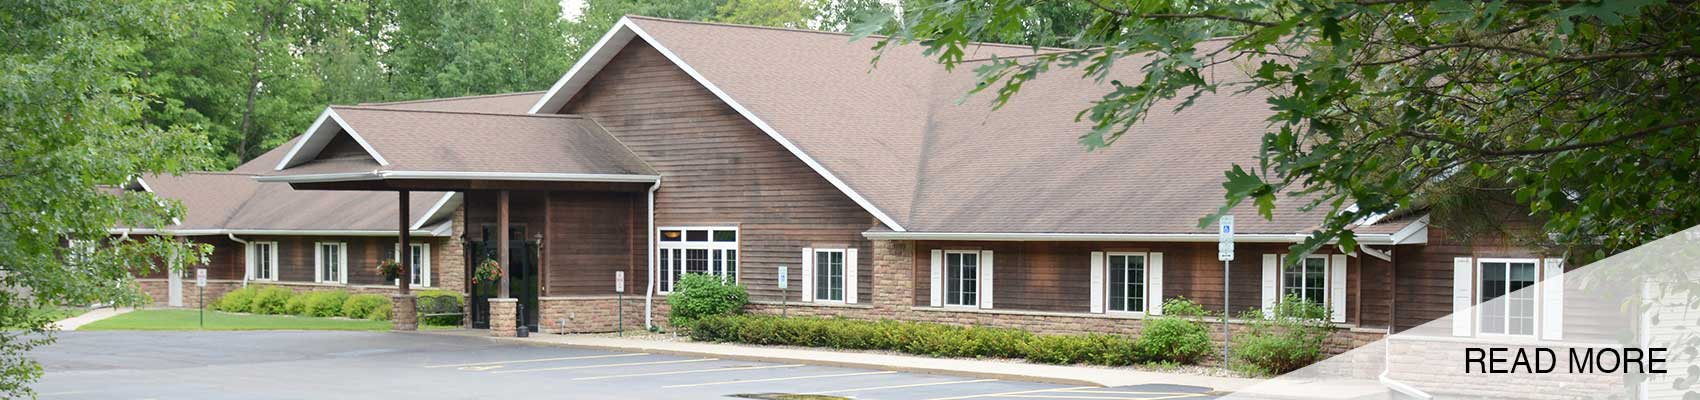 Copperleaf Senior Living   in Weston, WI